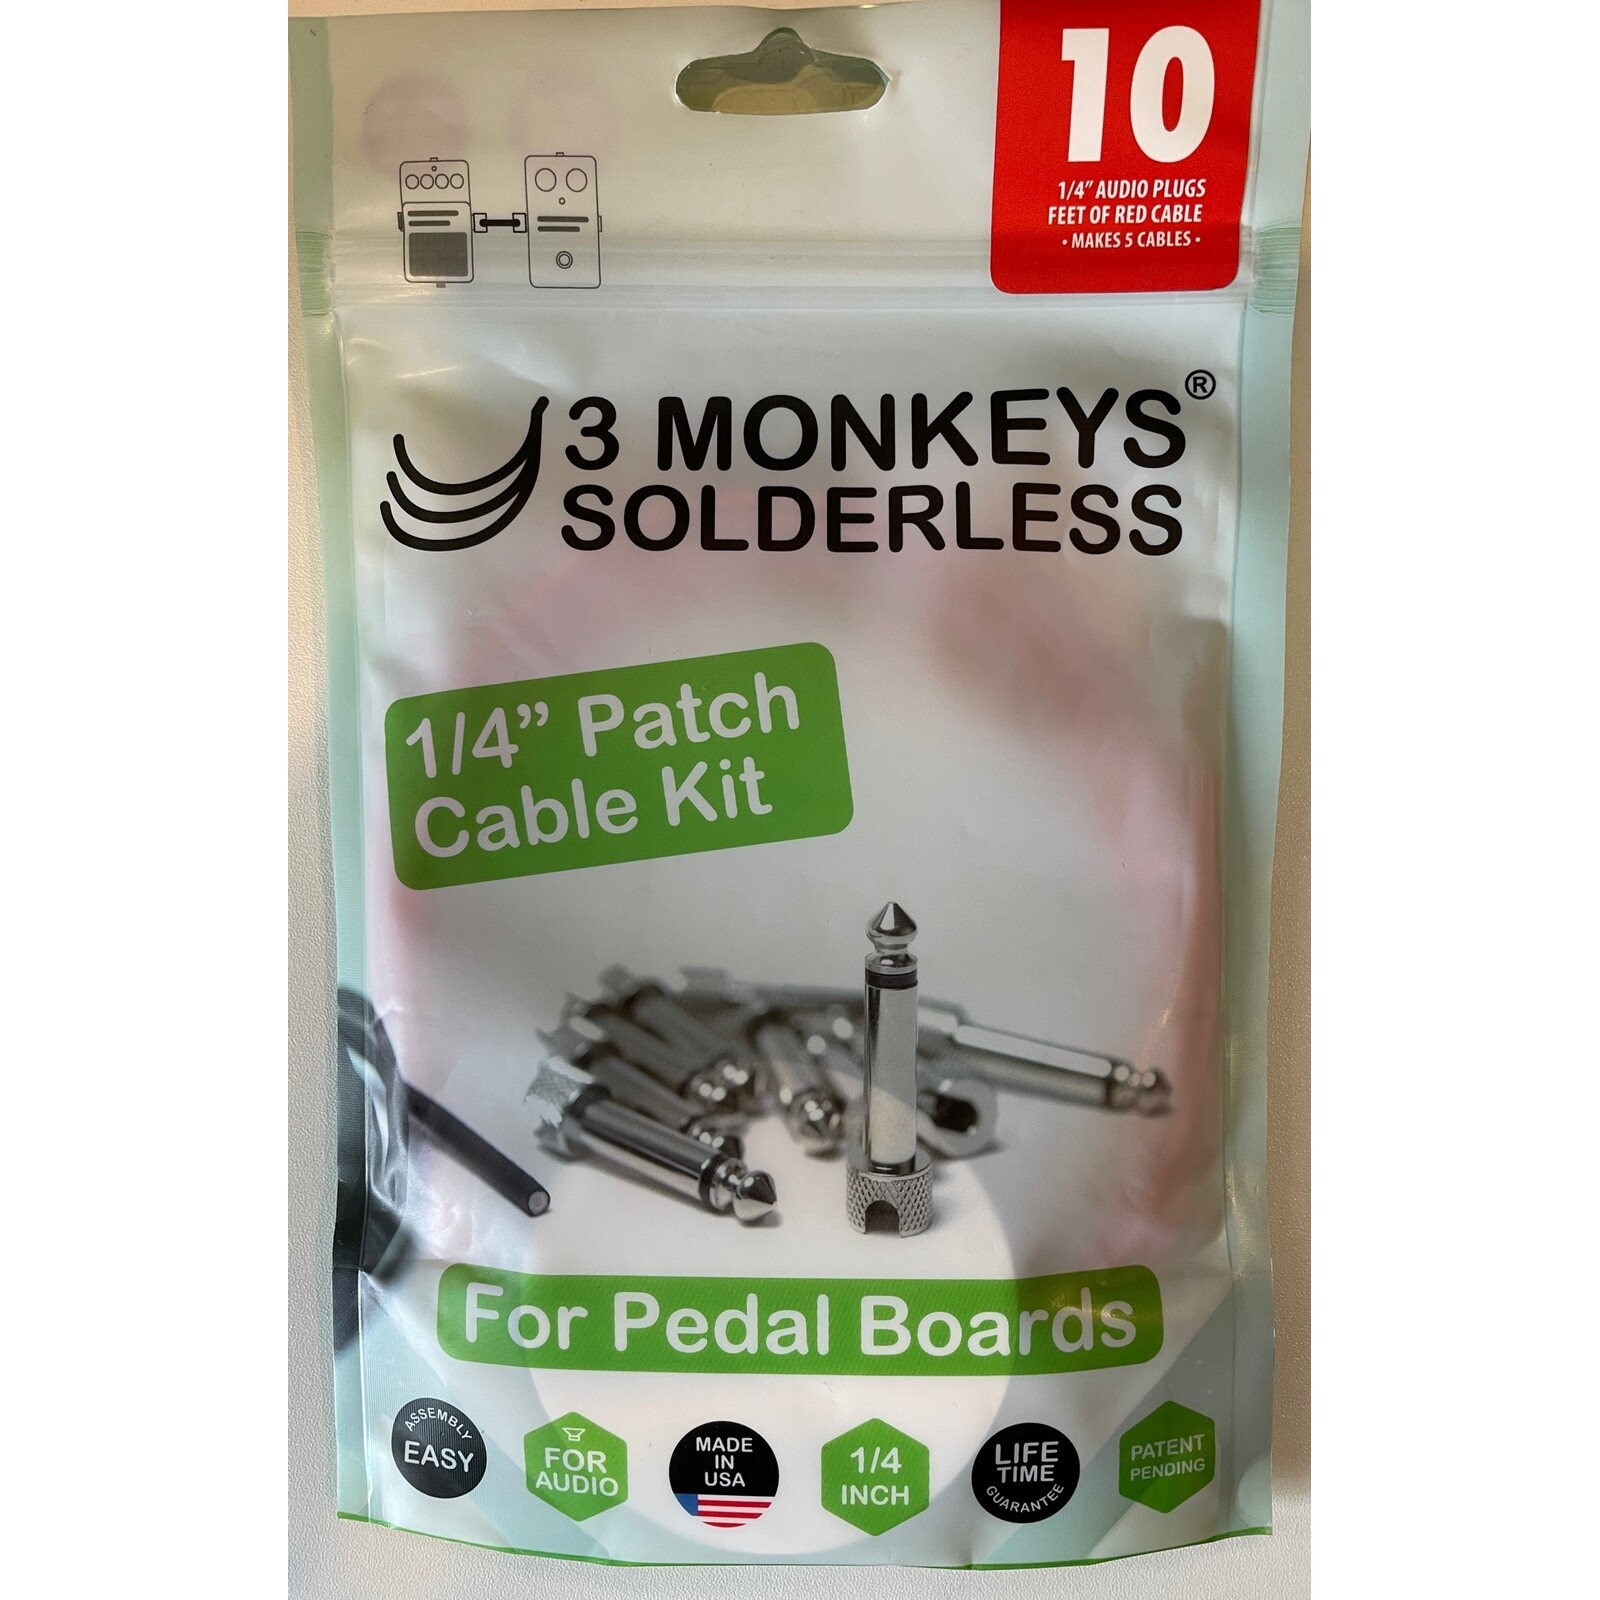 3 MONKEYS AUDIO PEDAL KIT 10 PLUGS- 10 FT CABLE (RED)